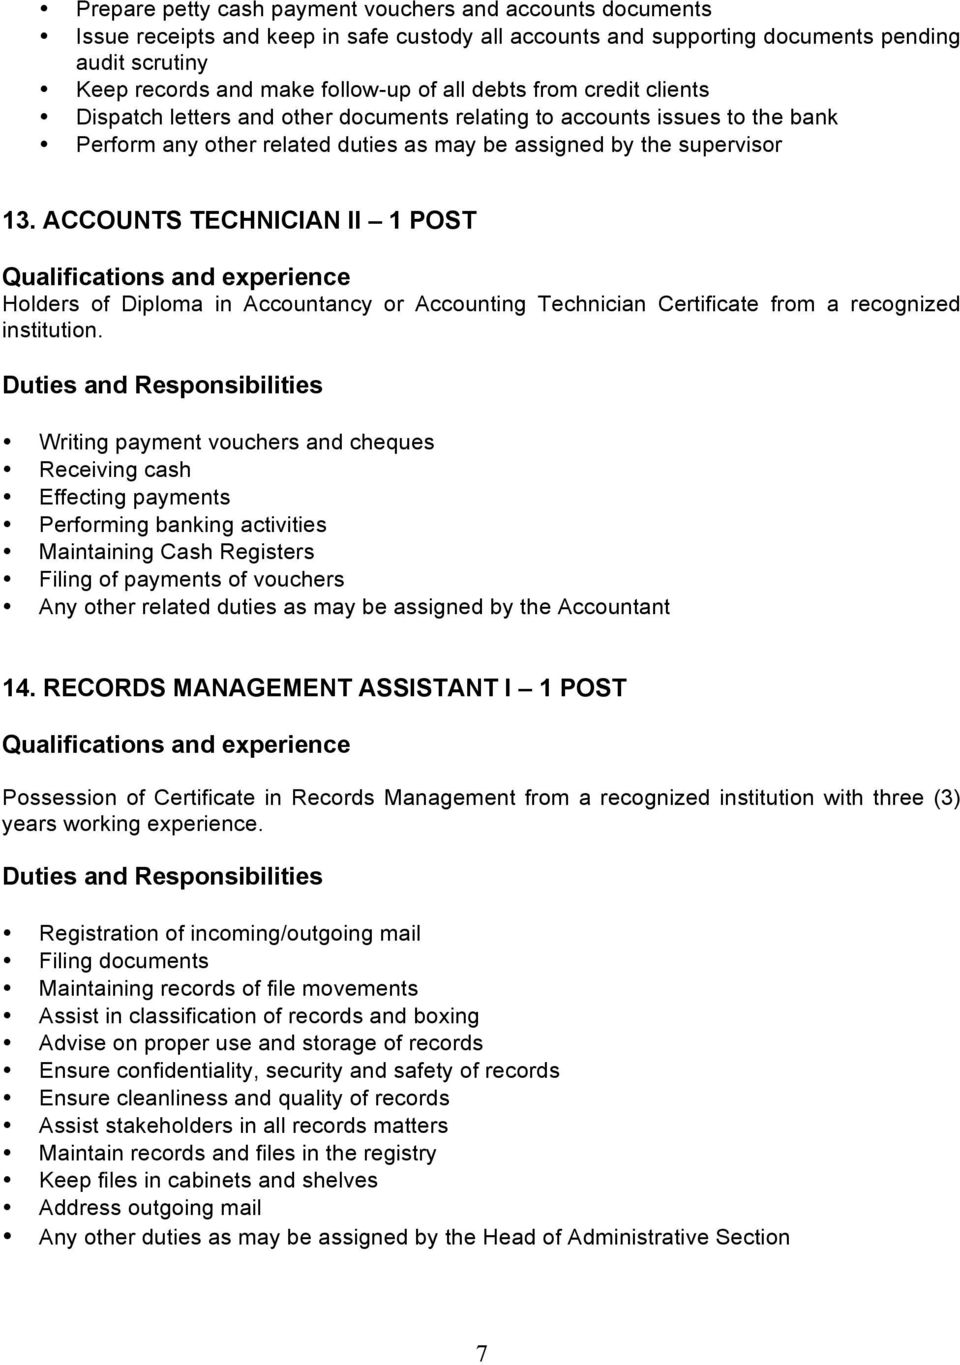 ACCOUNTS TECHNICIAN II 1 POST Holders of Diploma in Accountancy or Accounting Technician Certificate from a recognized institution.